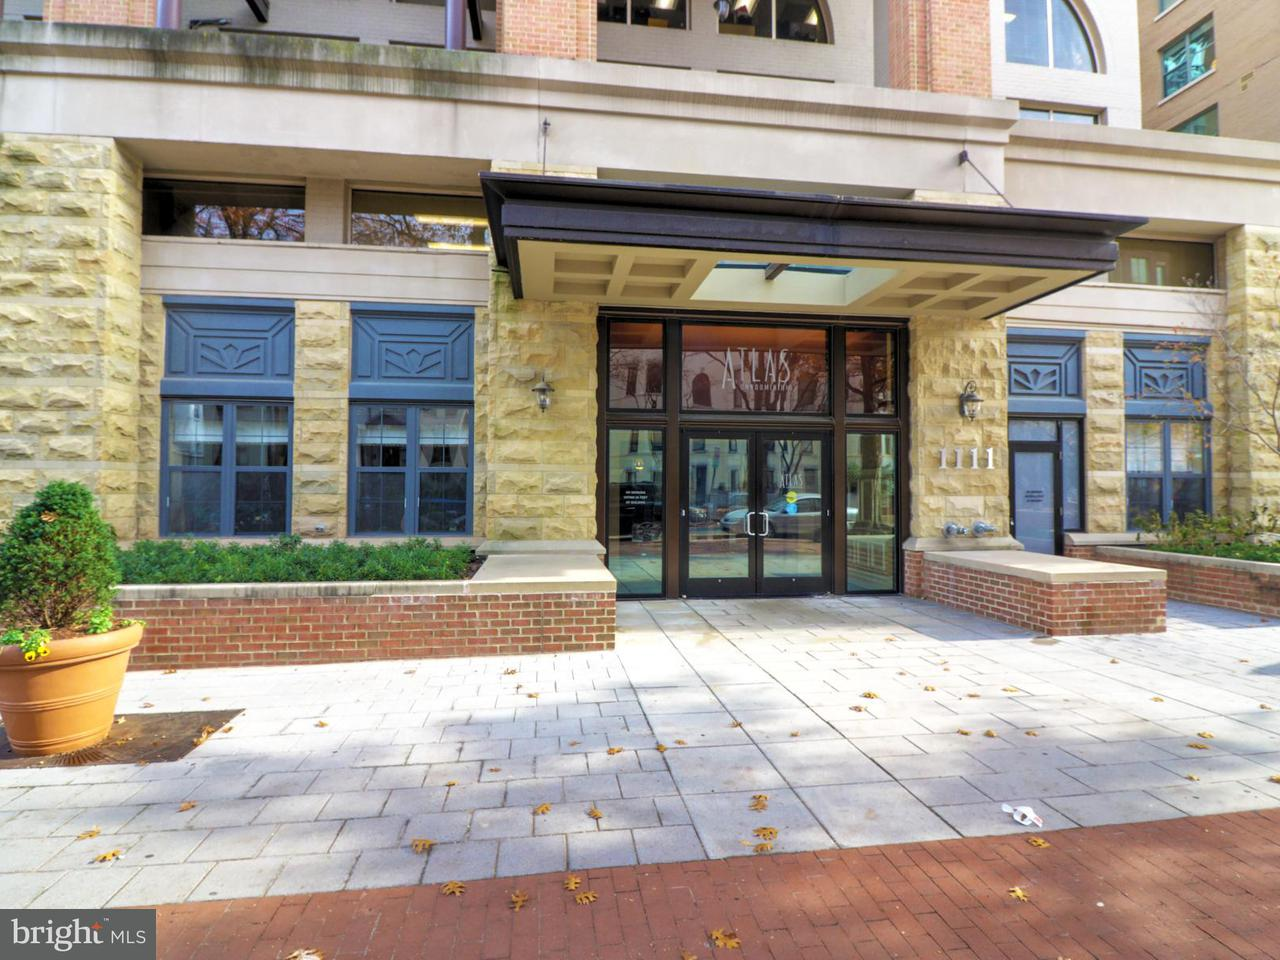 Additional photo for property listing at 1111 25TH ST NW #717 1111 25TH ST NW #717 Washington, District Of Columbia 20037 United States